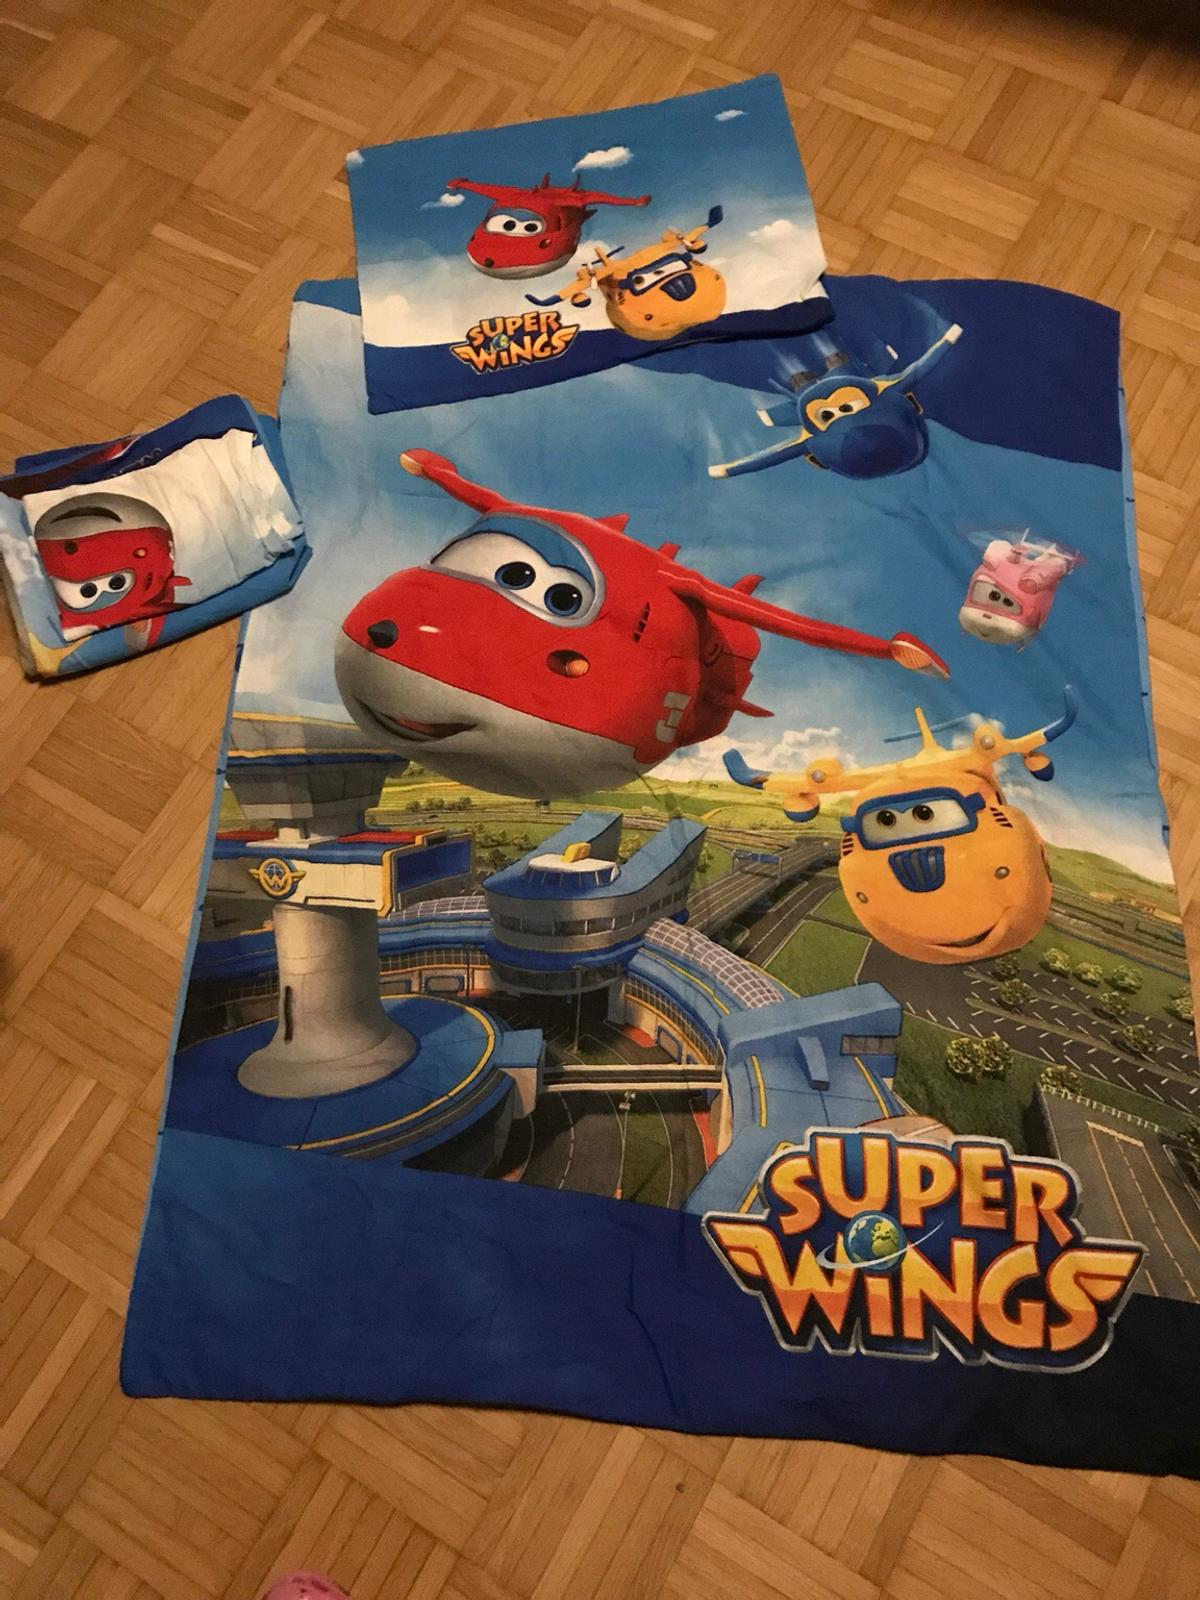 Bettwäsche Super Wings 100x135cm 40x60cm In 4020 Linz For 1000 For